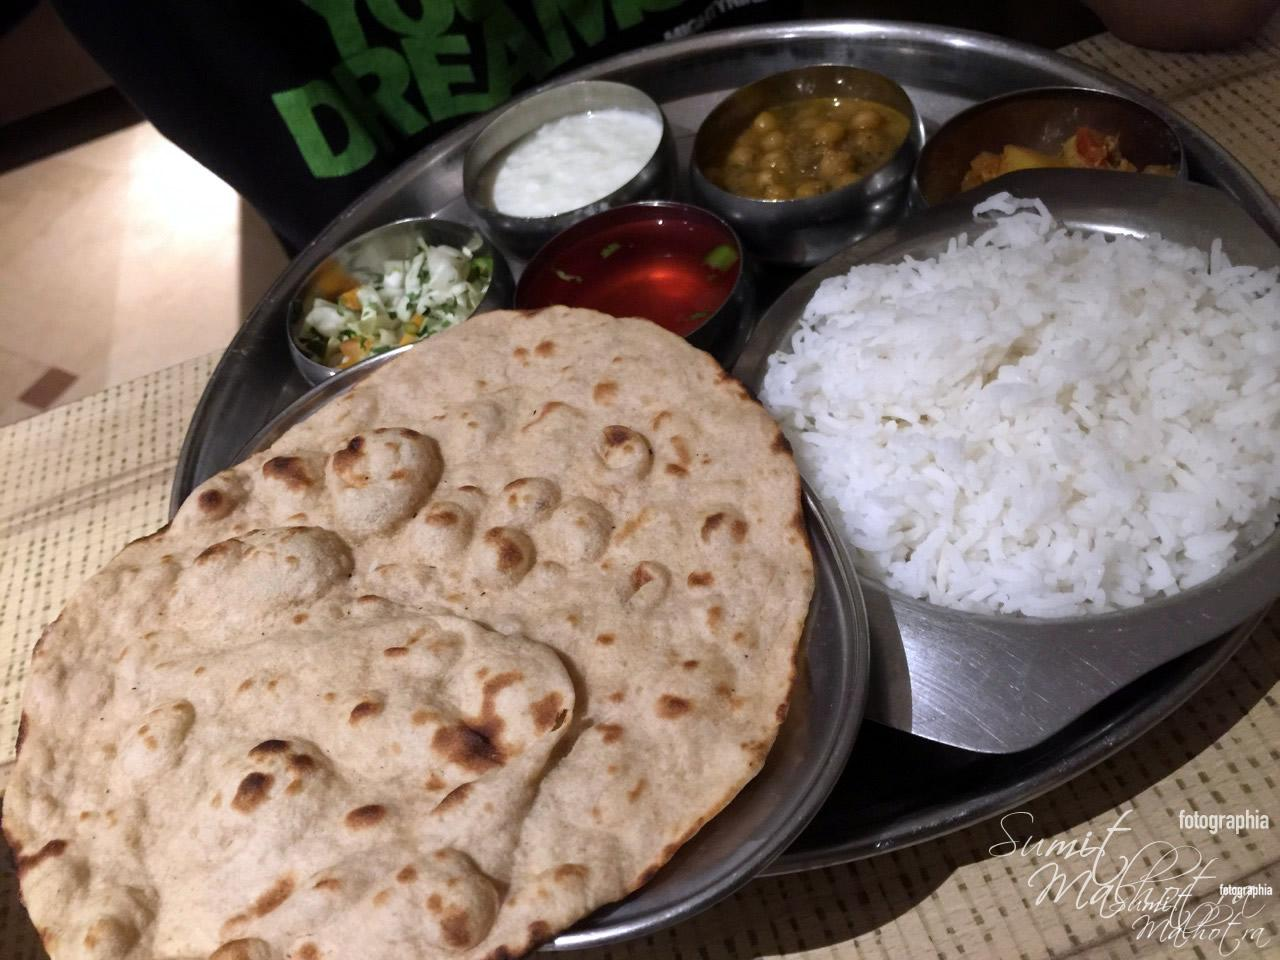 The Vegetarian Thali at Spice Goa